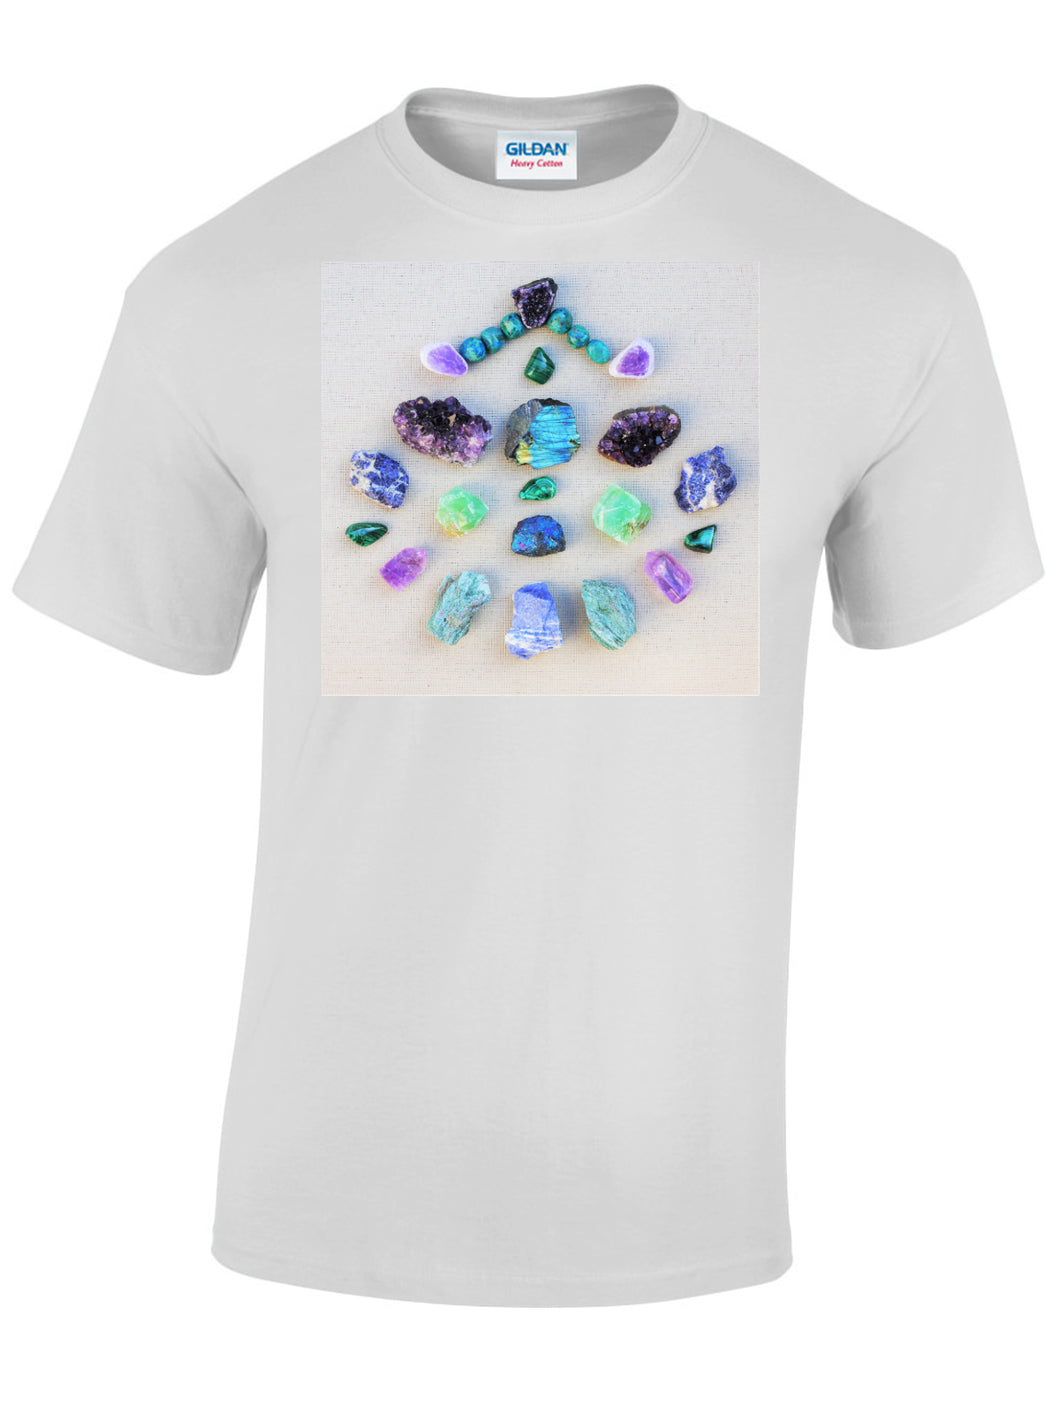 Mens White T-shirt with the photo of our favourite Crystal Grid printed on it